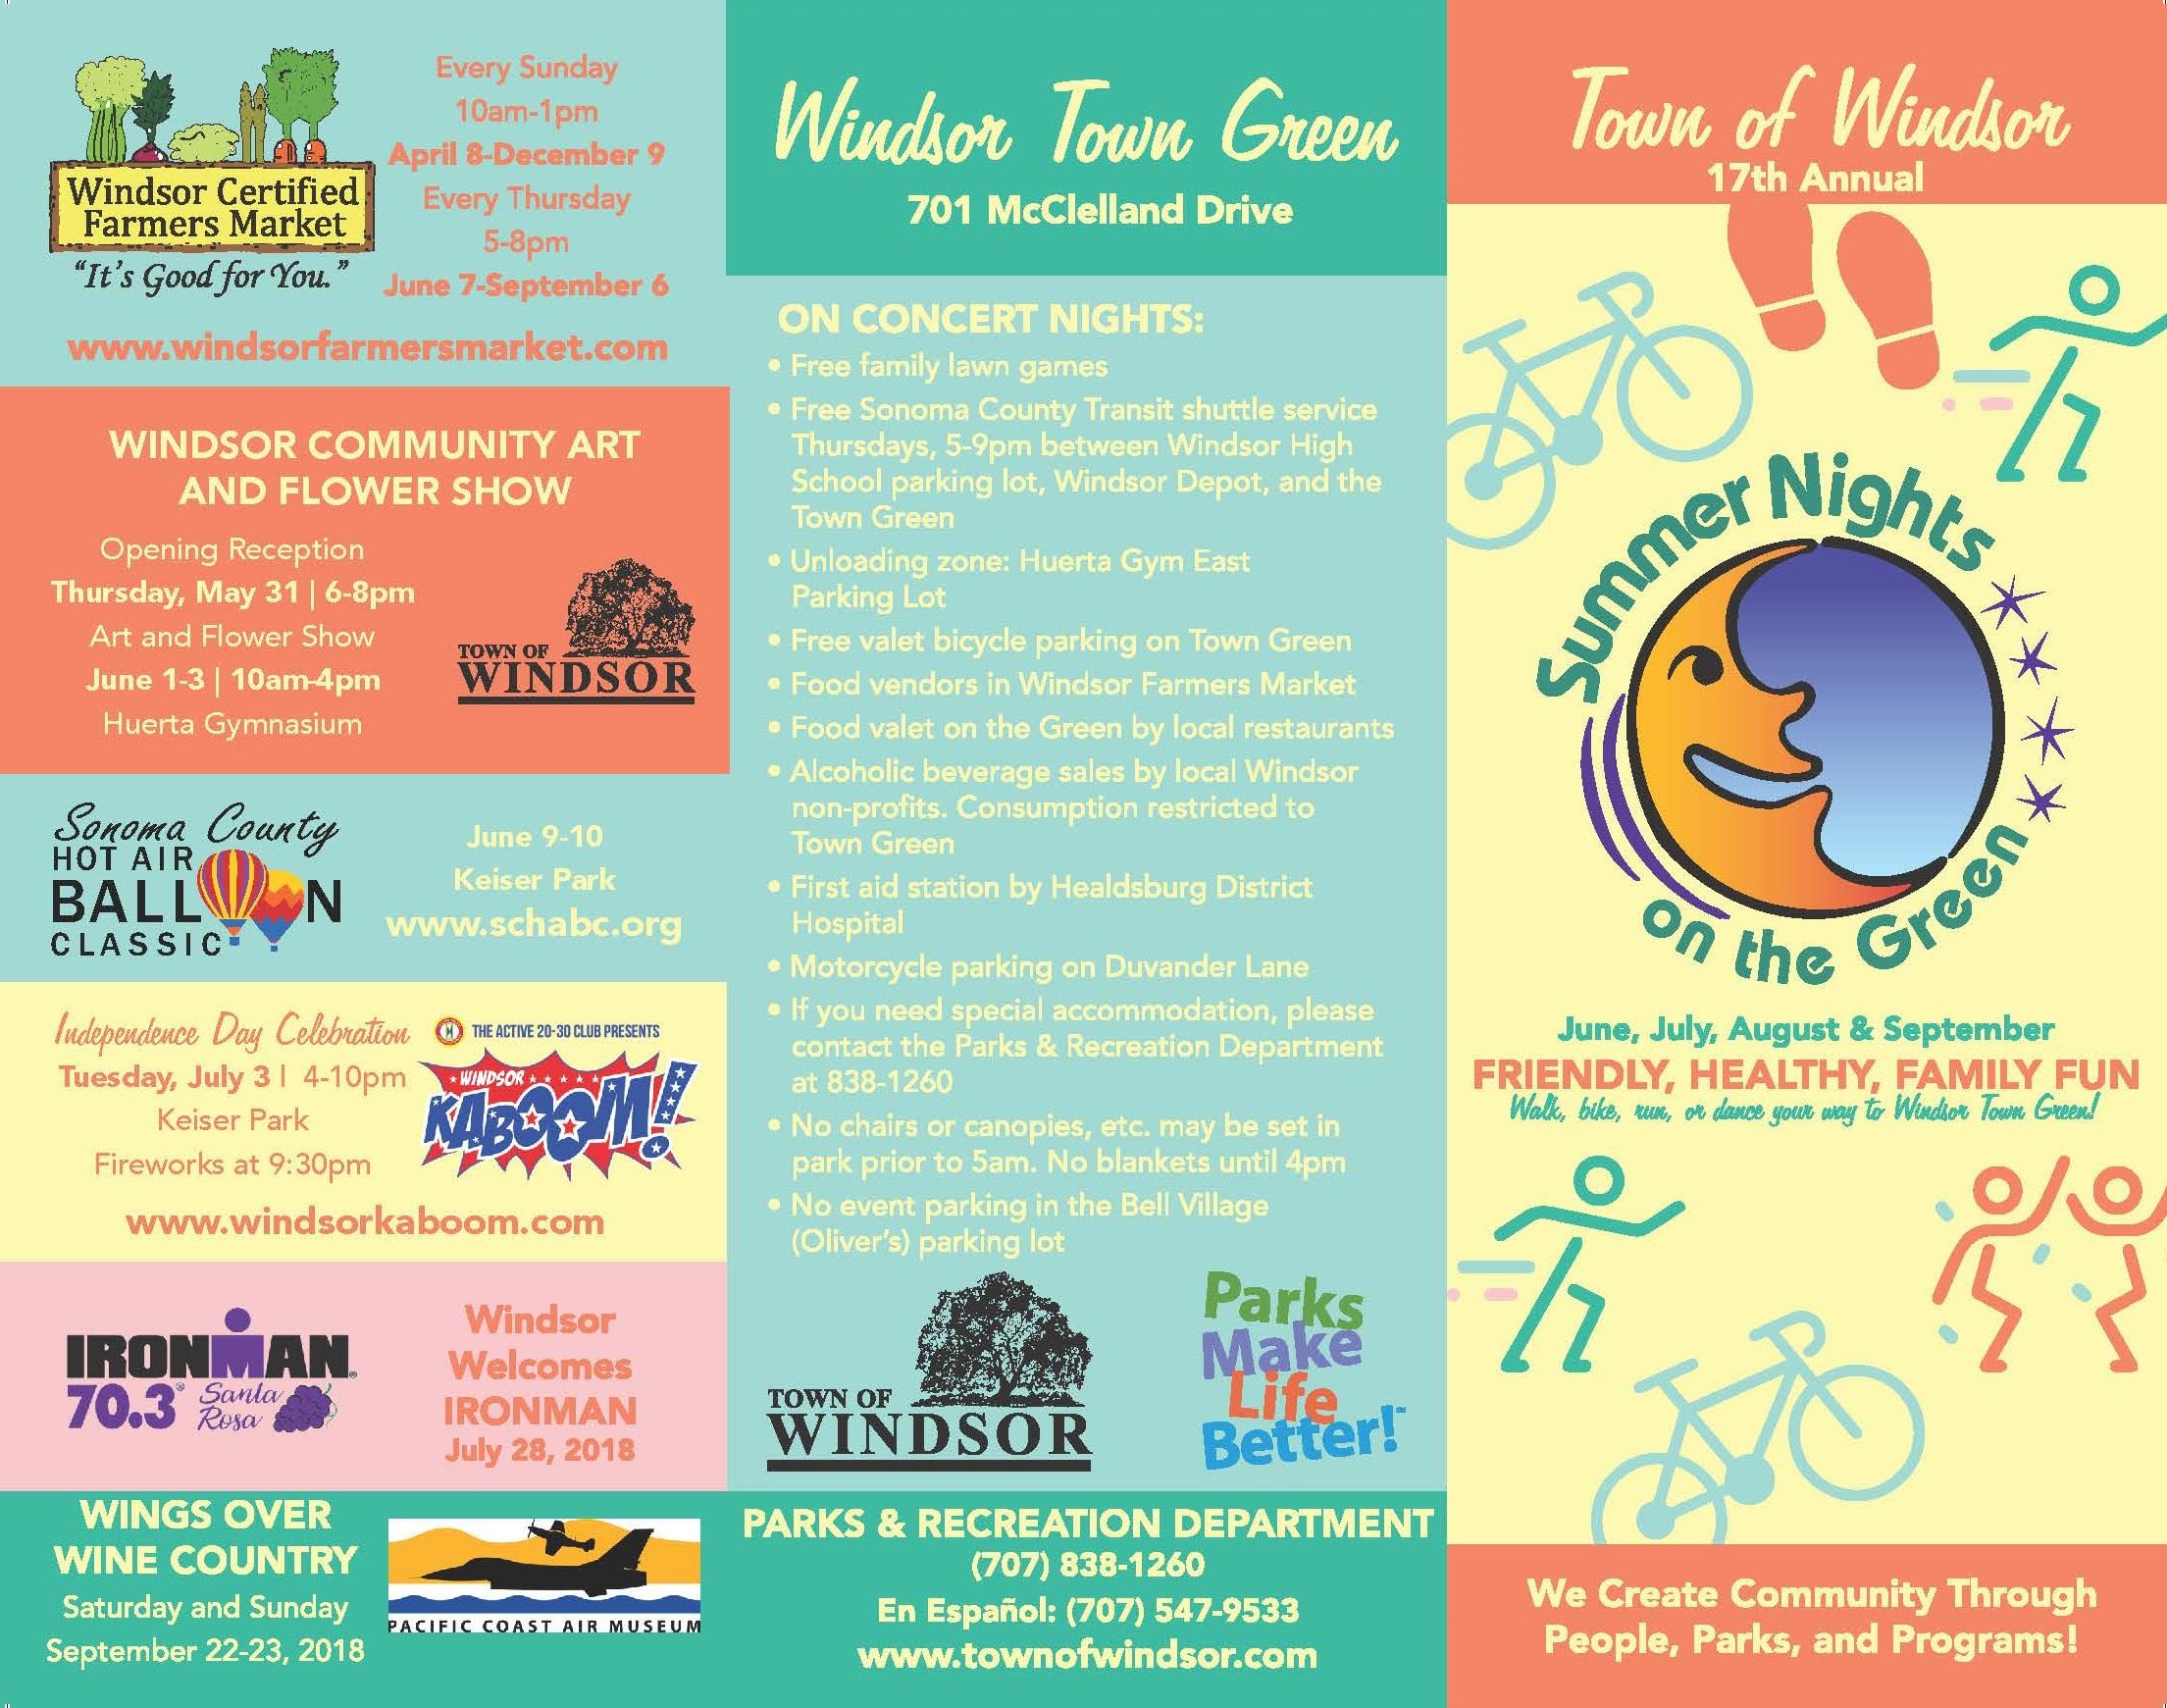 Town of Windsor SNOG Trifold-Final-Printer_Page_1